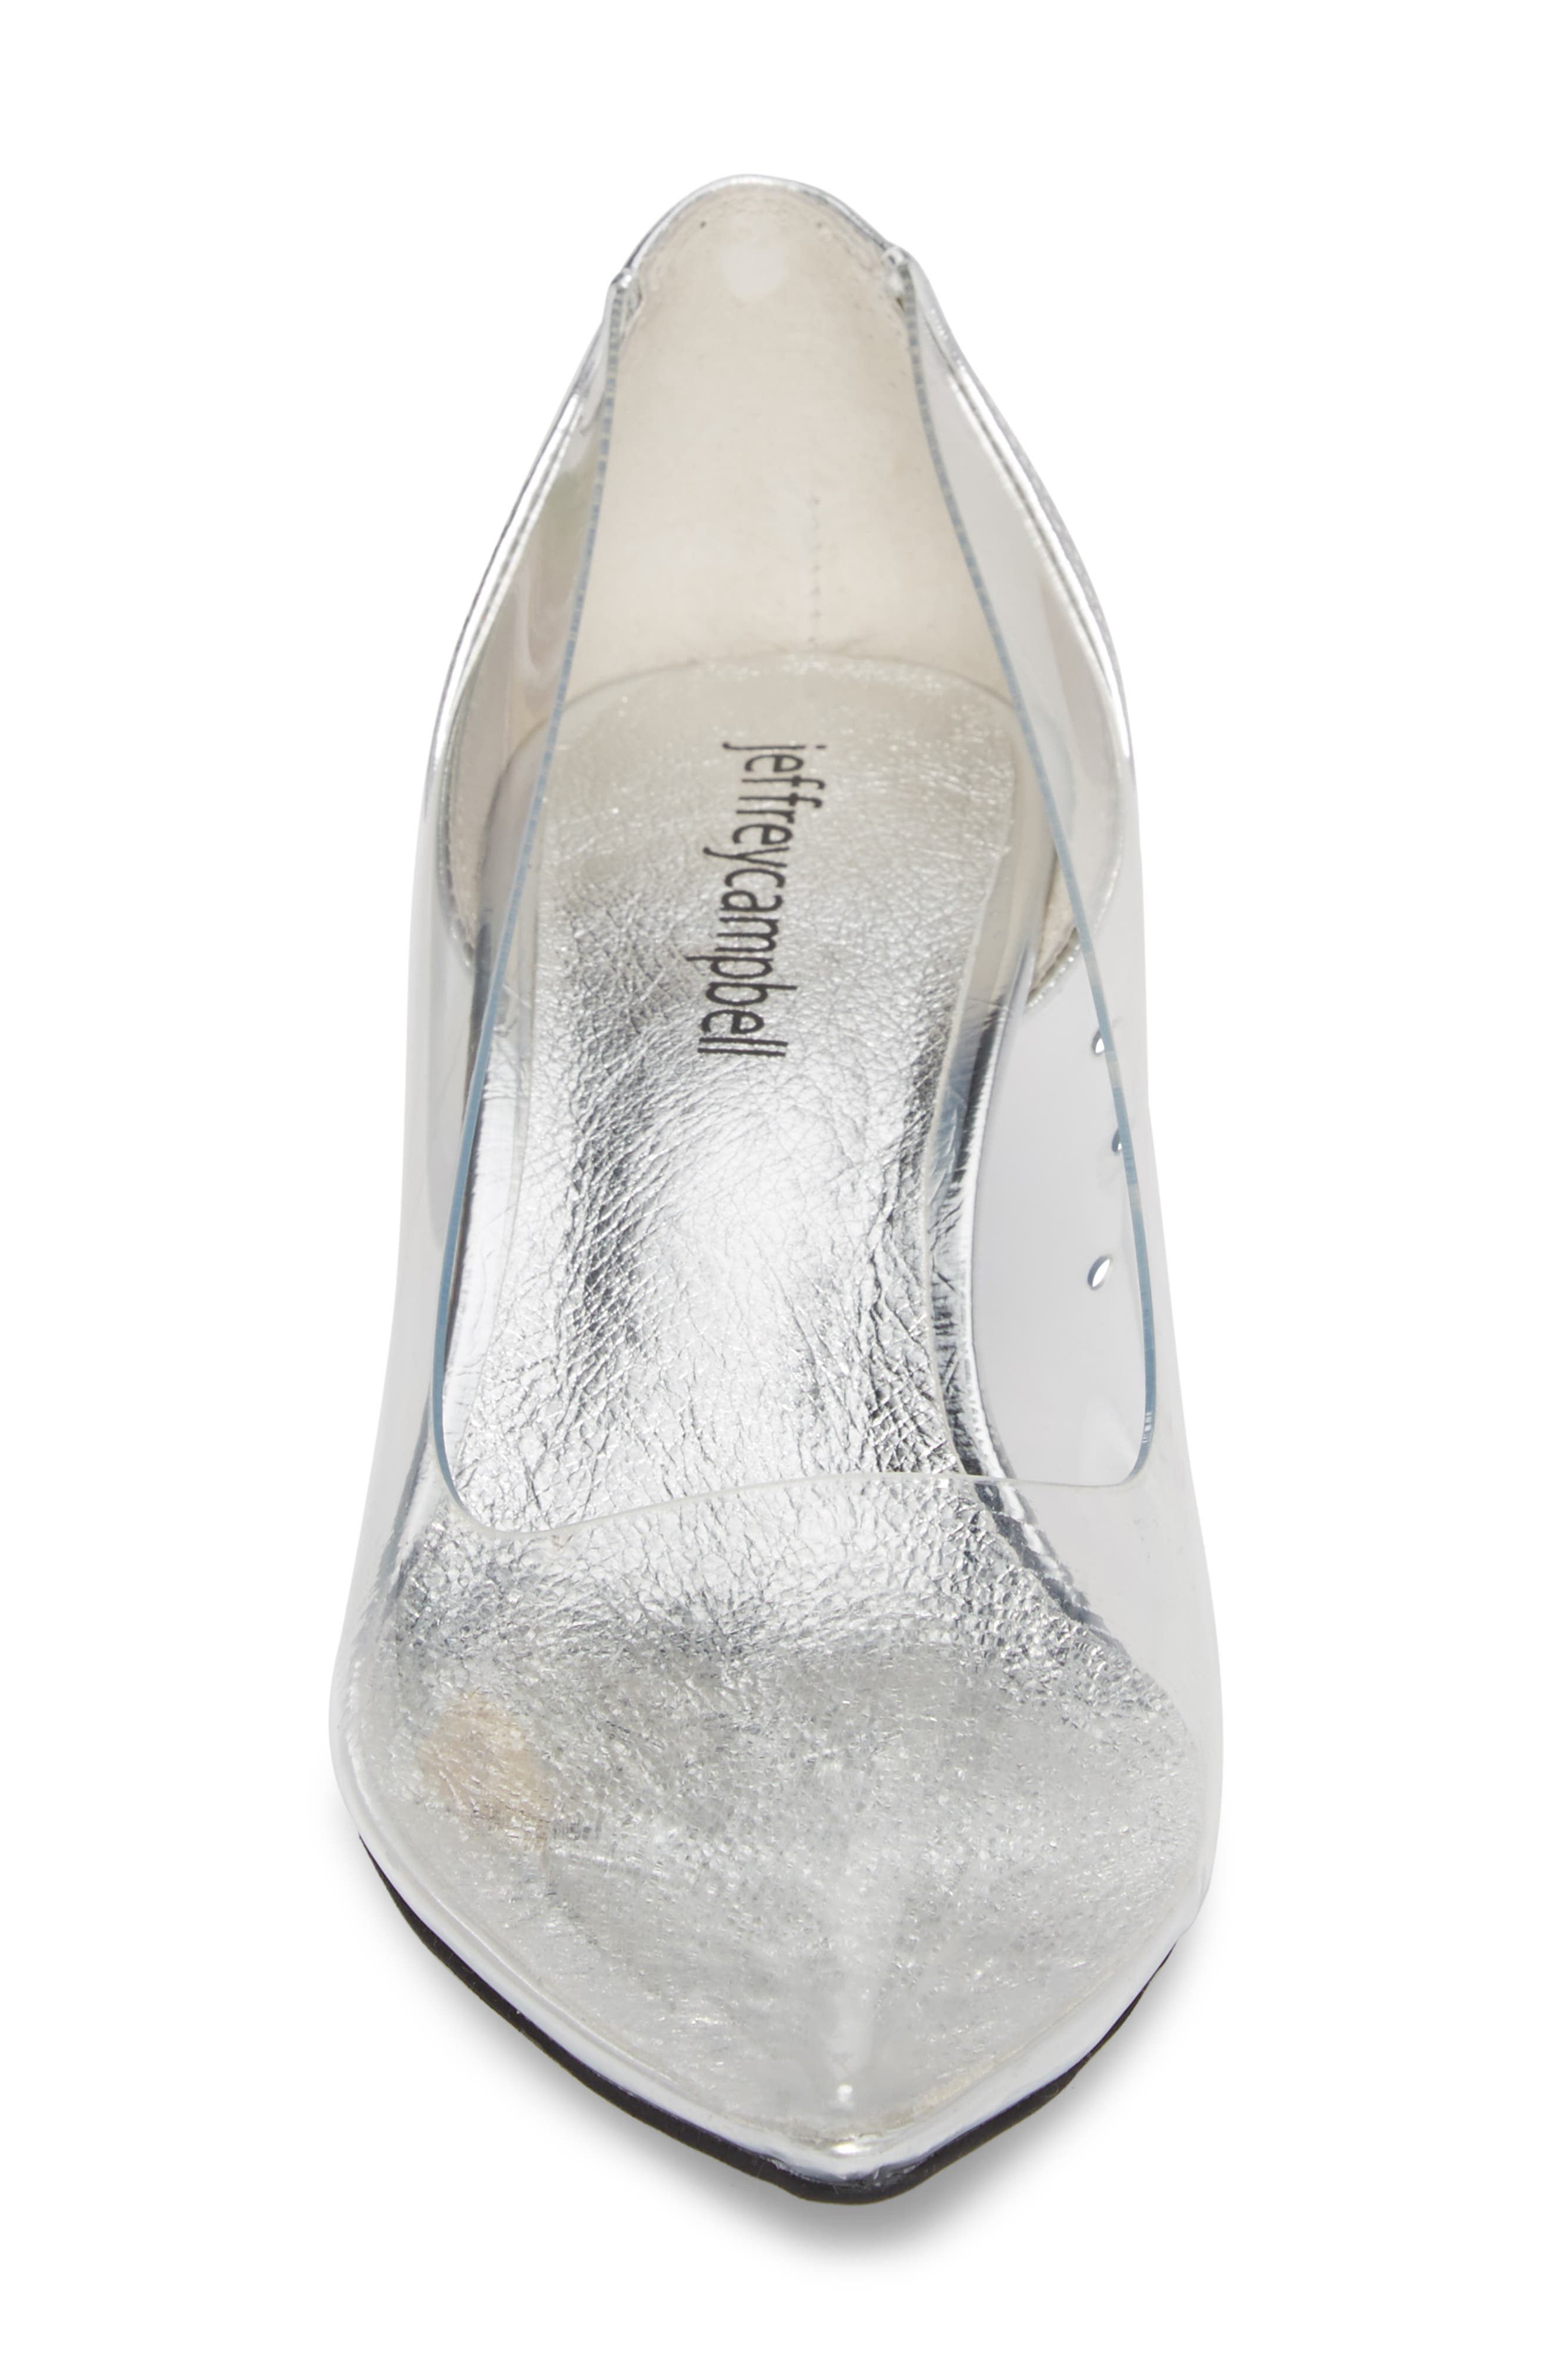 Gracienne Transparent Pump,                             Alternate thumbnail 4, color,                             CLEAR/ SILVER LEATHER